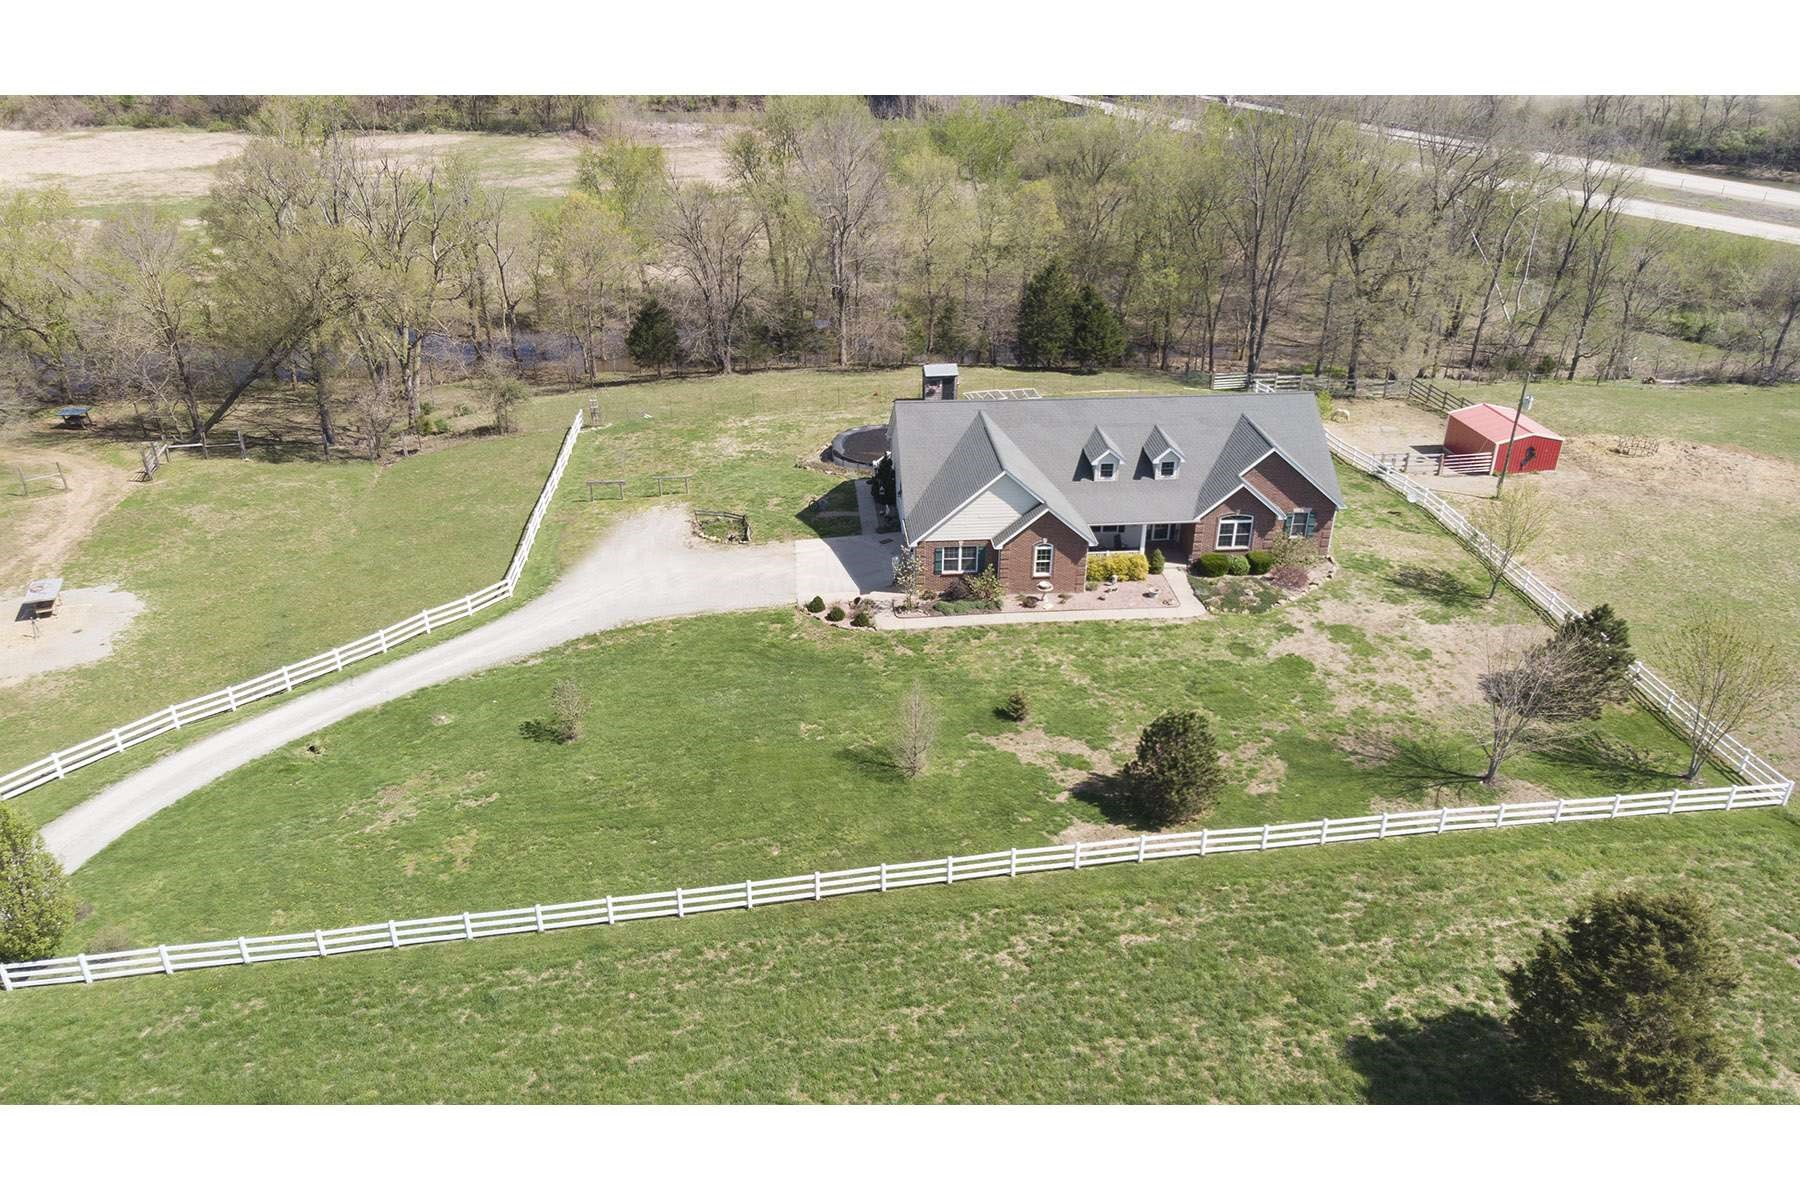 CUSTOM HOME & 75 ACRE CATTLE FARM ON THE RIVER